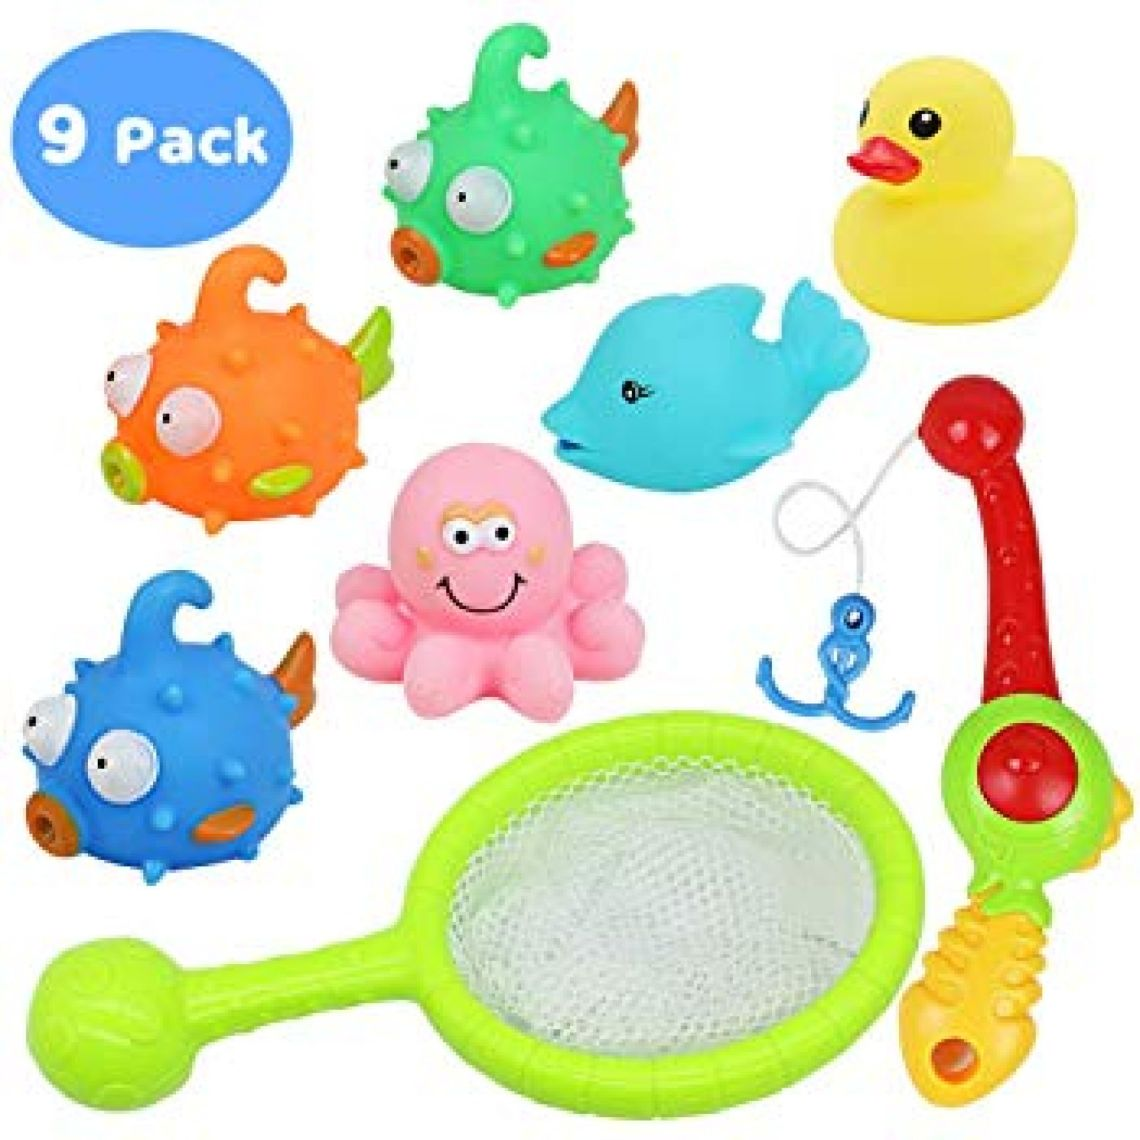 Amazon.com: yoptote Bathtub Toys Fishing Game Bath Toys Tub Water Pool Toys with Fish Octopus Dolphin Rod Net Set for Kids Toddler Boys and Girls, 8 Packs: Toys & Games